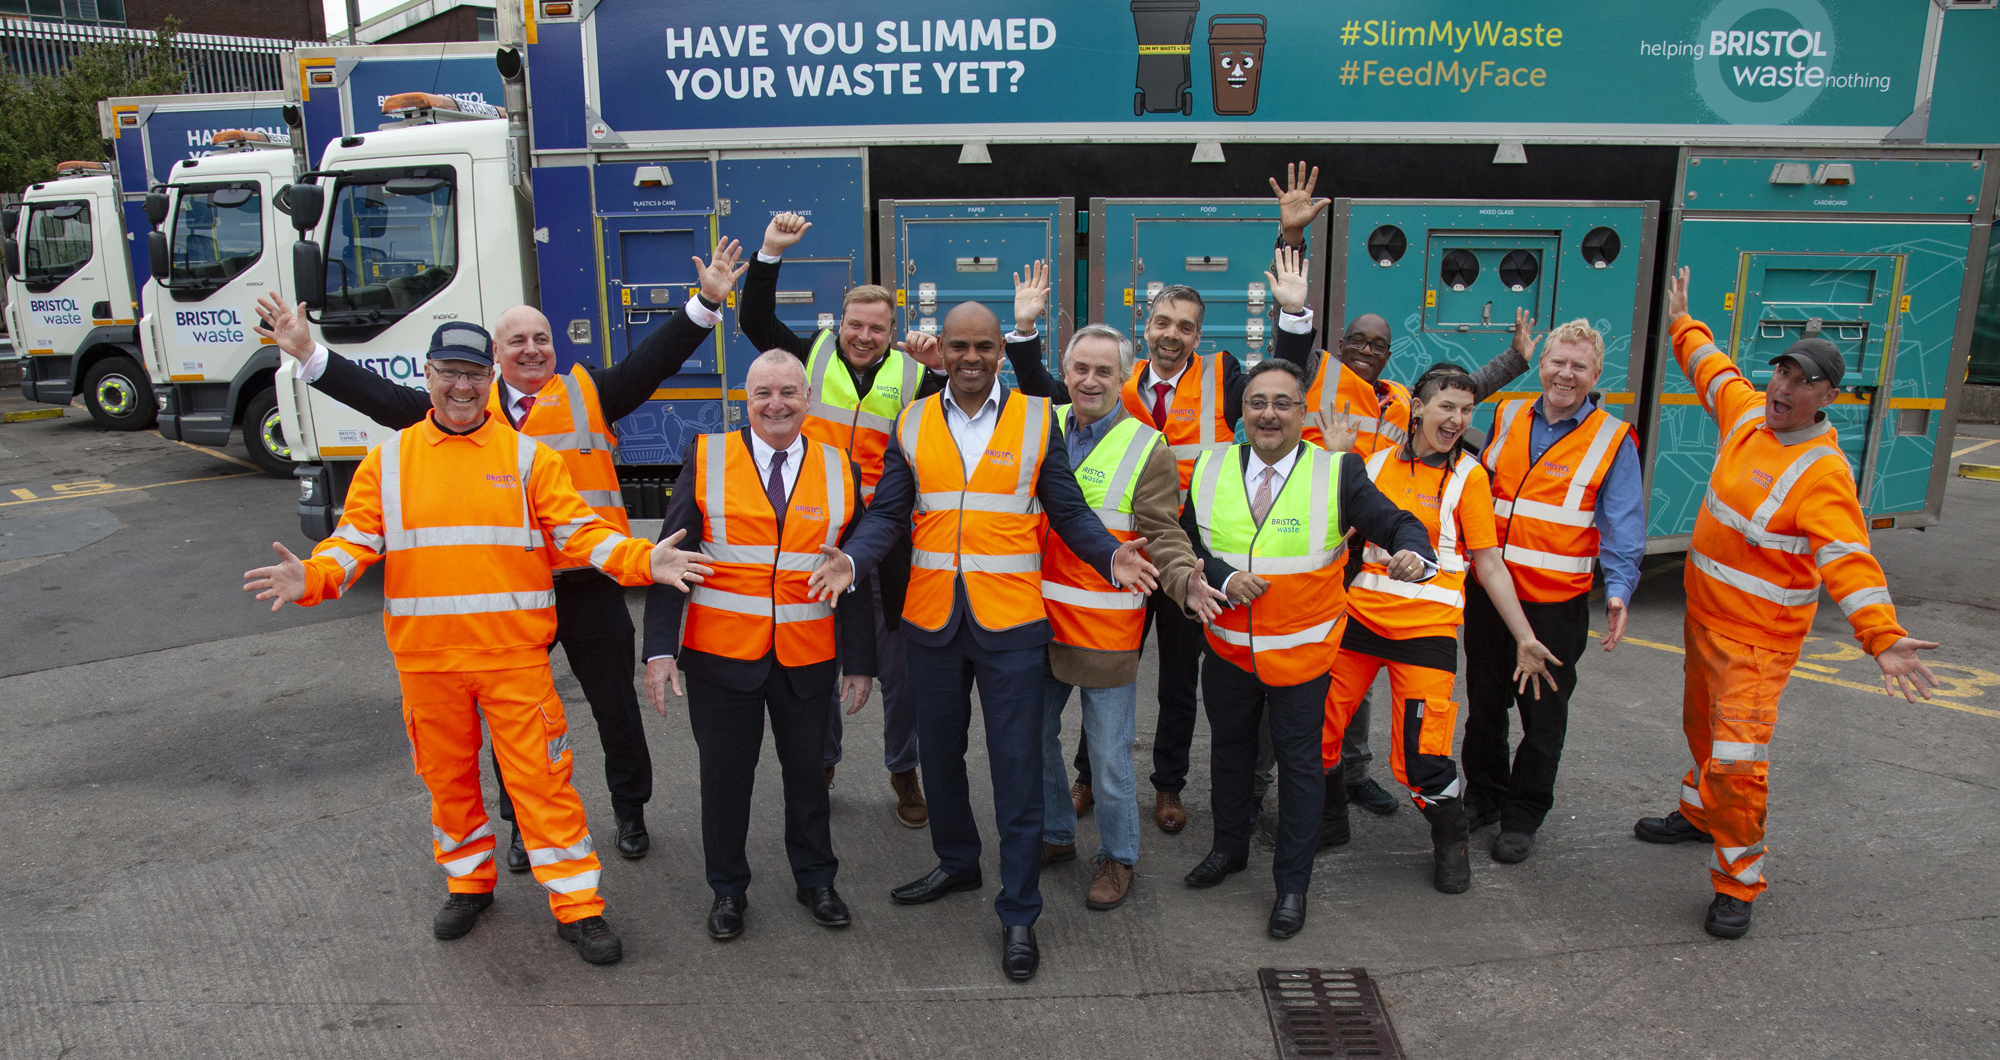 New Recycling Fleet for Bristol Unveiled -